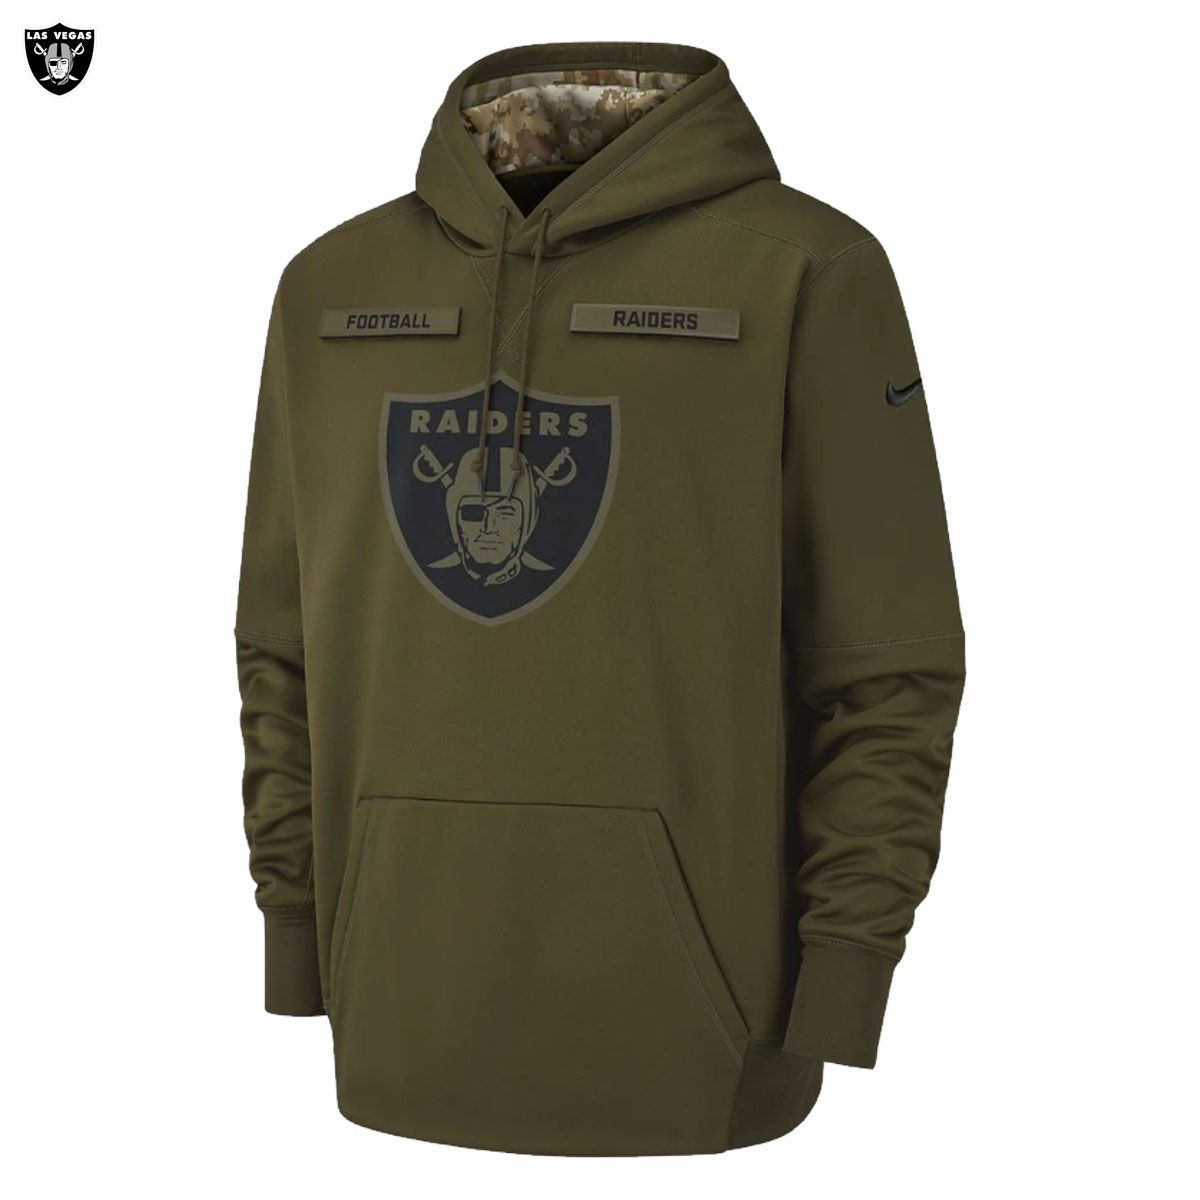 4dd6968b14c NEW Nike 2018 NFL Salute to Service Oakland Raiders Therma PO Hoodie  Limited NWT Salute The Troops! The NEW 2018 Salute To service Line Is  Finally Here!